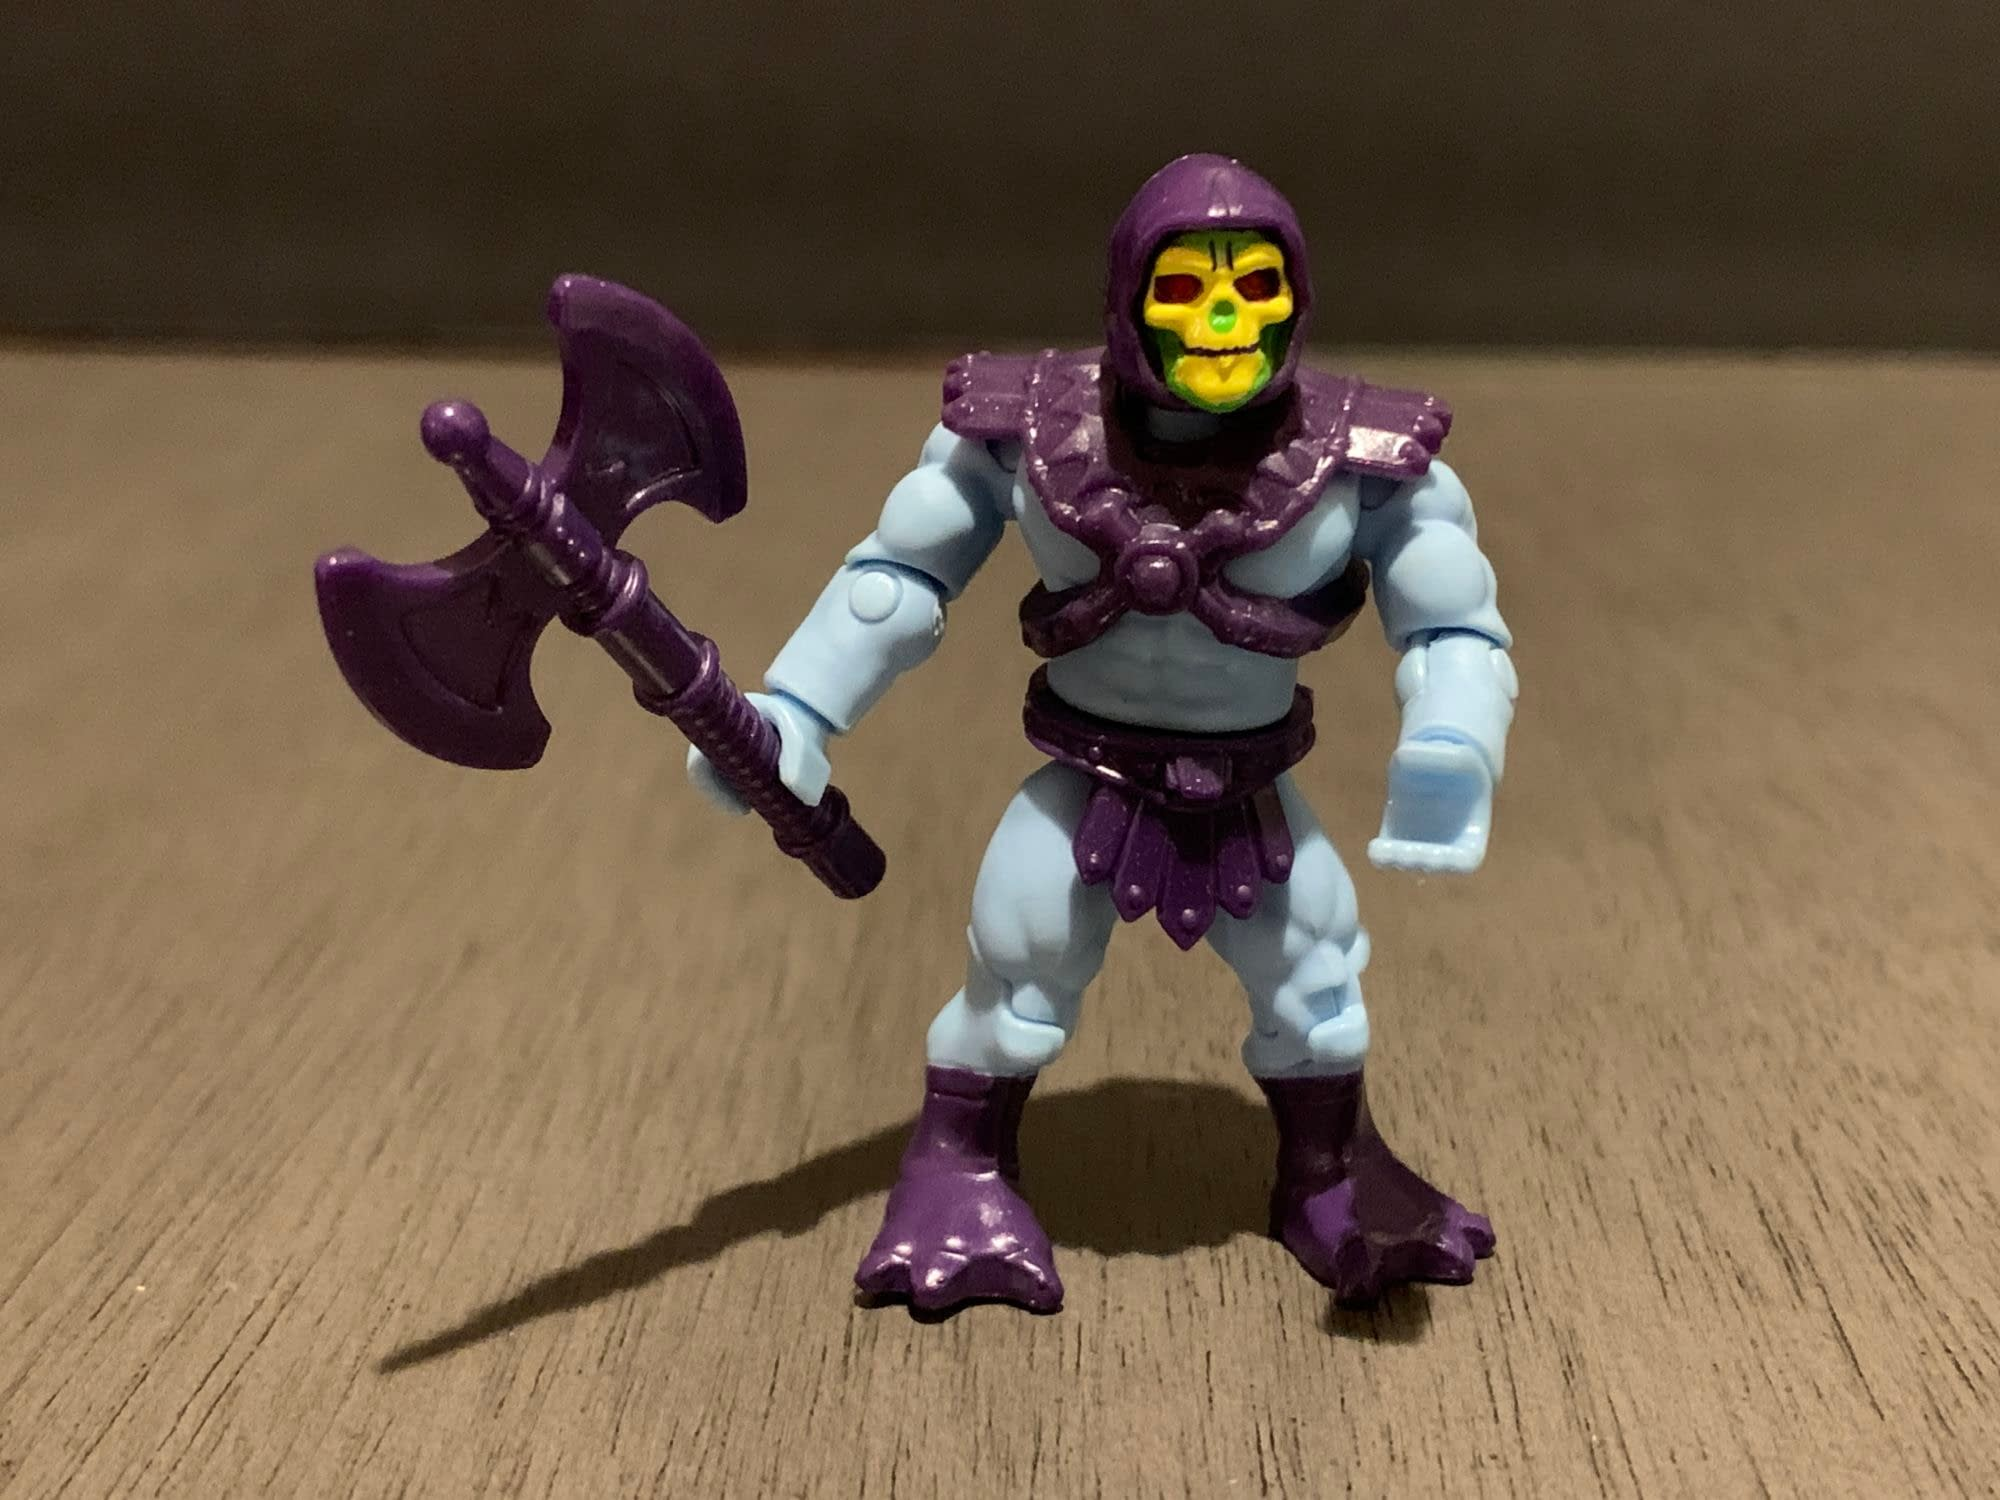 Let's Take A Look At The MOTU MegaBlox Skeletor & Panthor Set